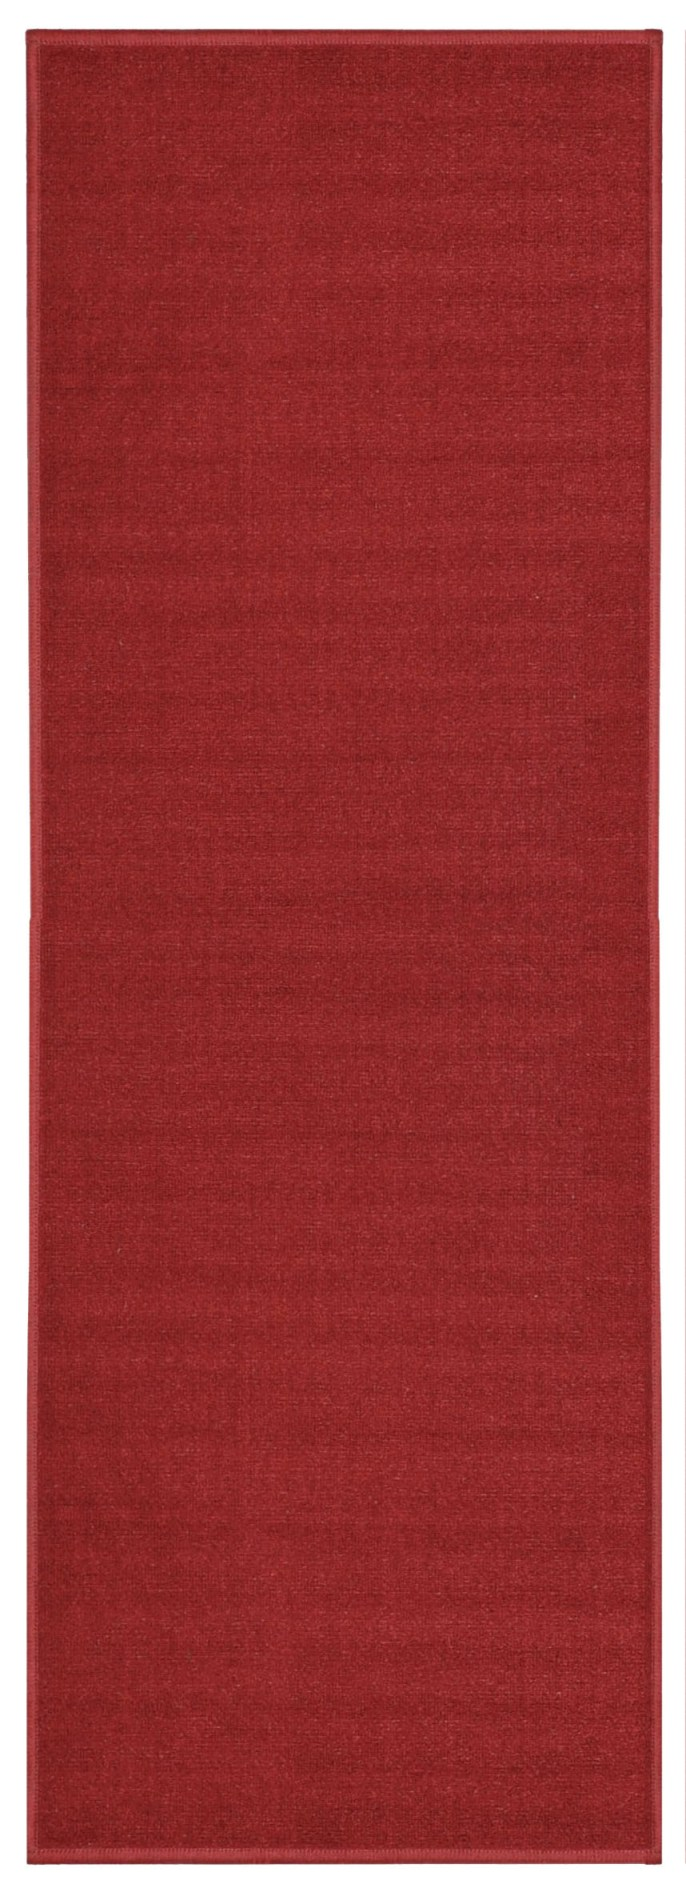 Custom Size Runner Red Solid Single Color Plain Non Slip (Non Skid) Rubber  Back Stair Hallway Rug By Feet 26 Inch Wide Select Your Length   Walmart.com